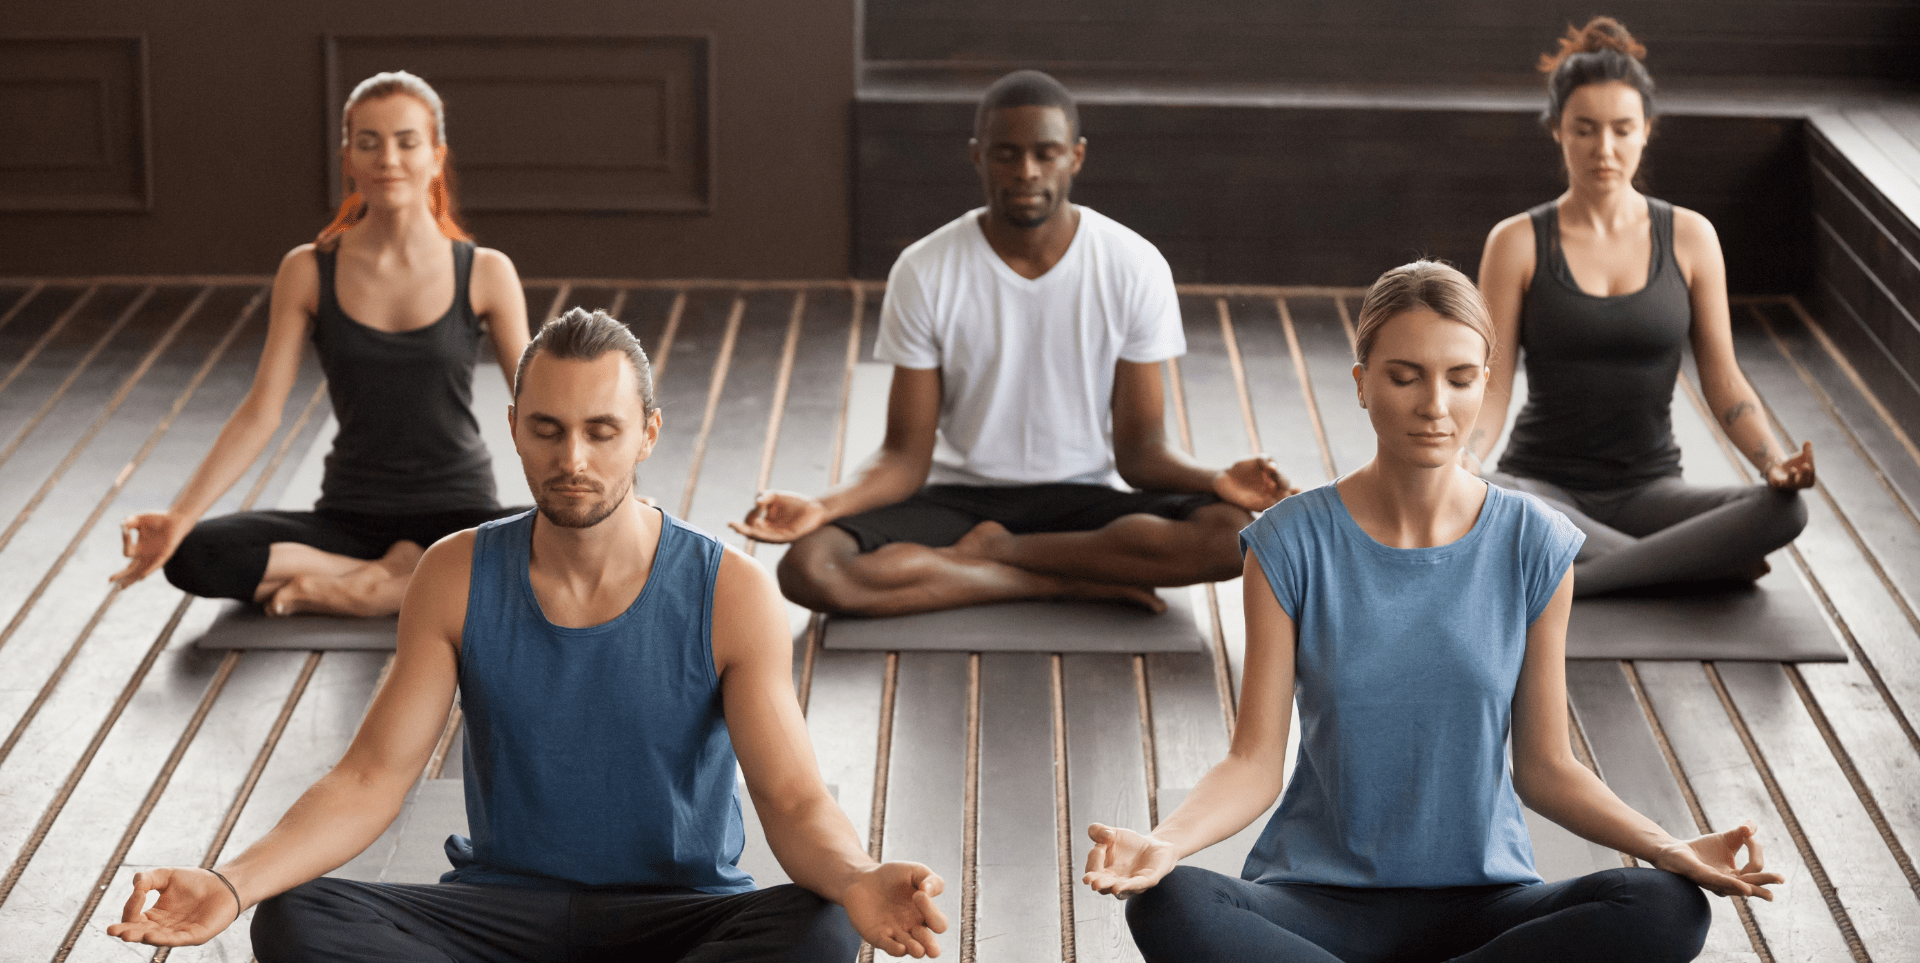 diverse group of people practicing a mediation exercise during a yoga session